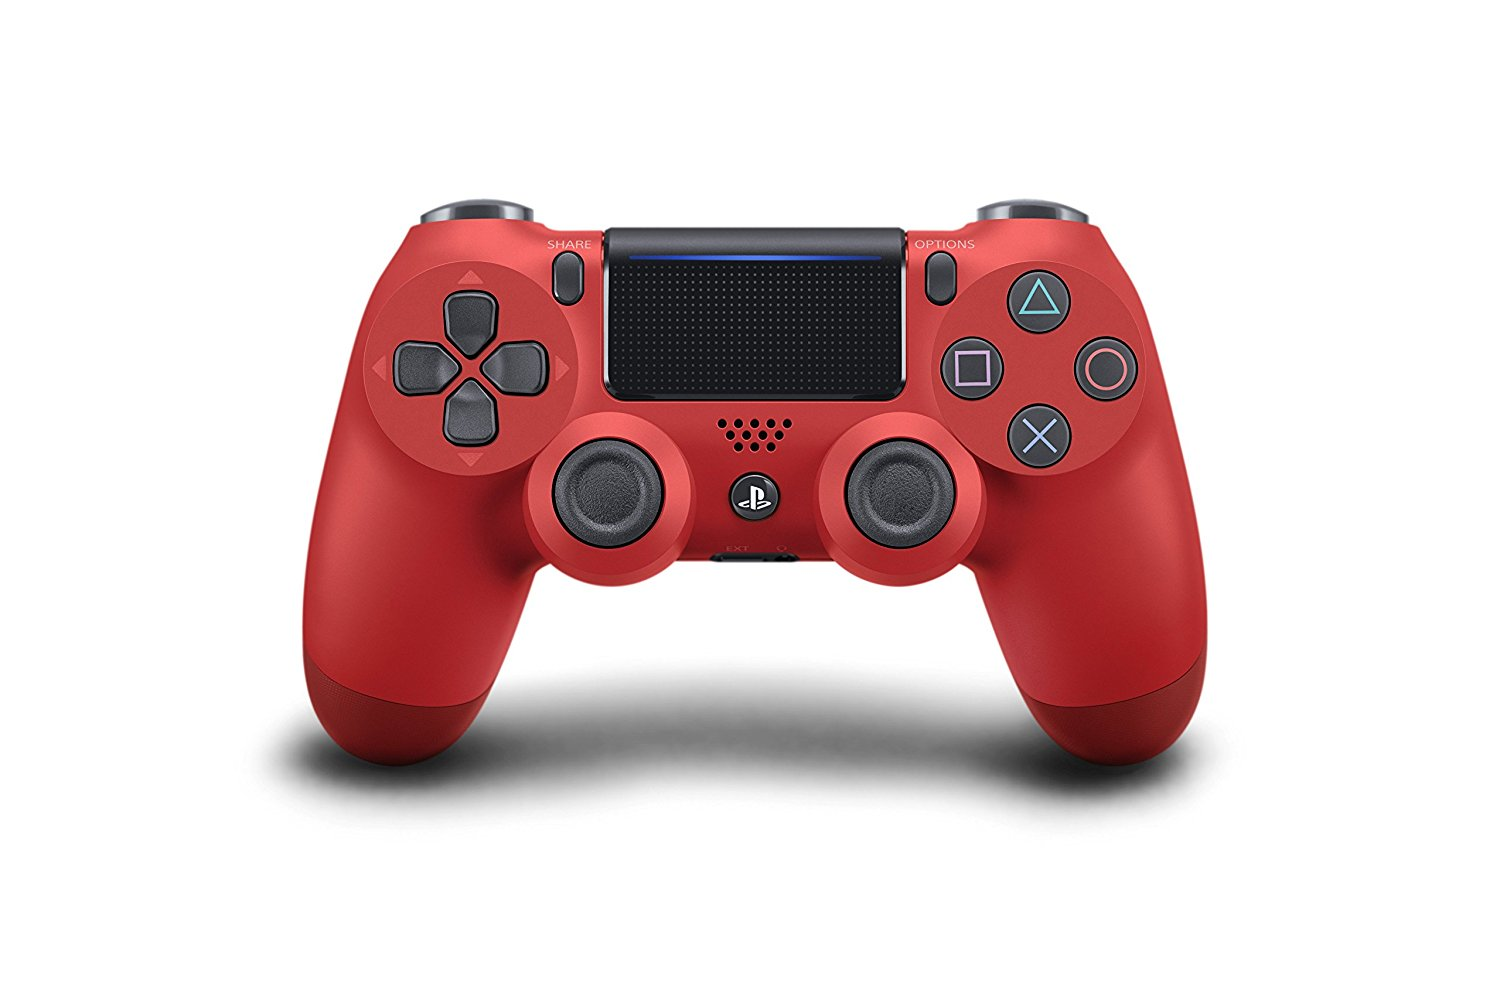 DualShock 4 deals sales price